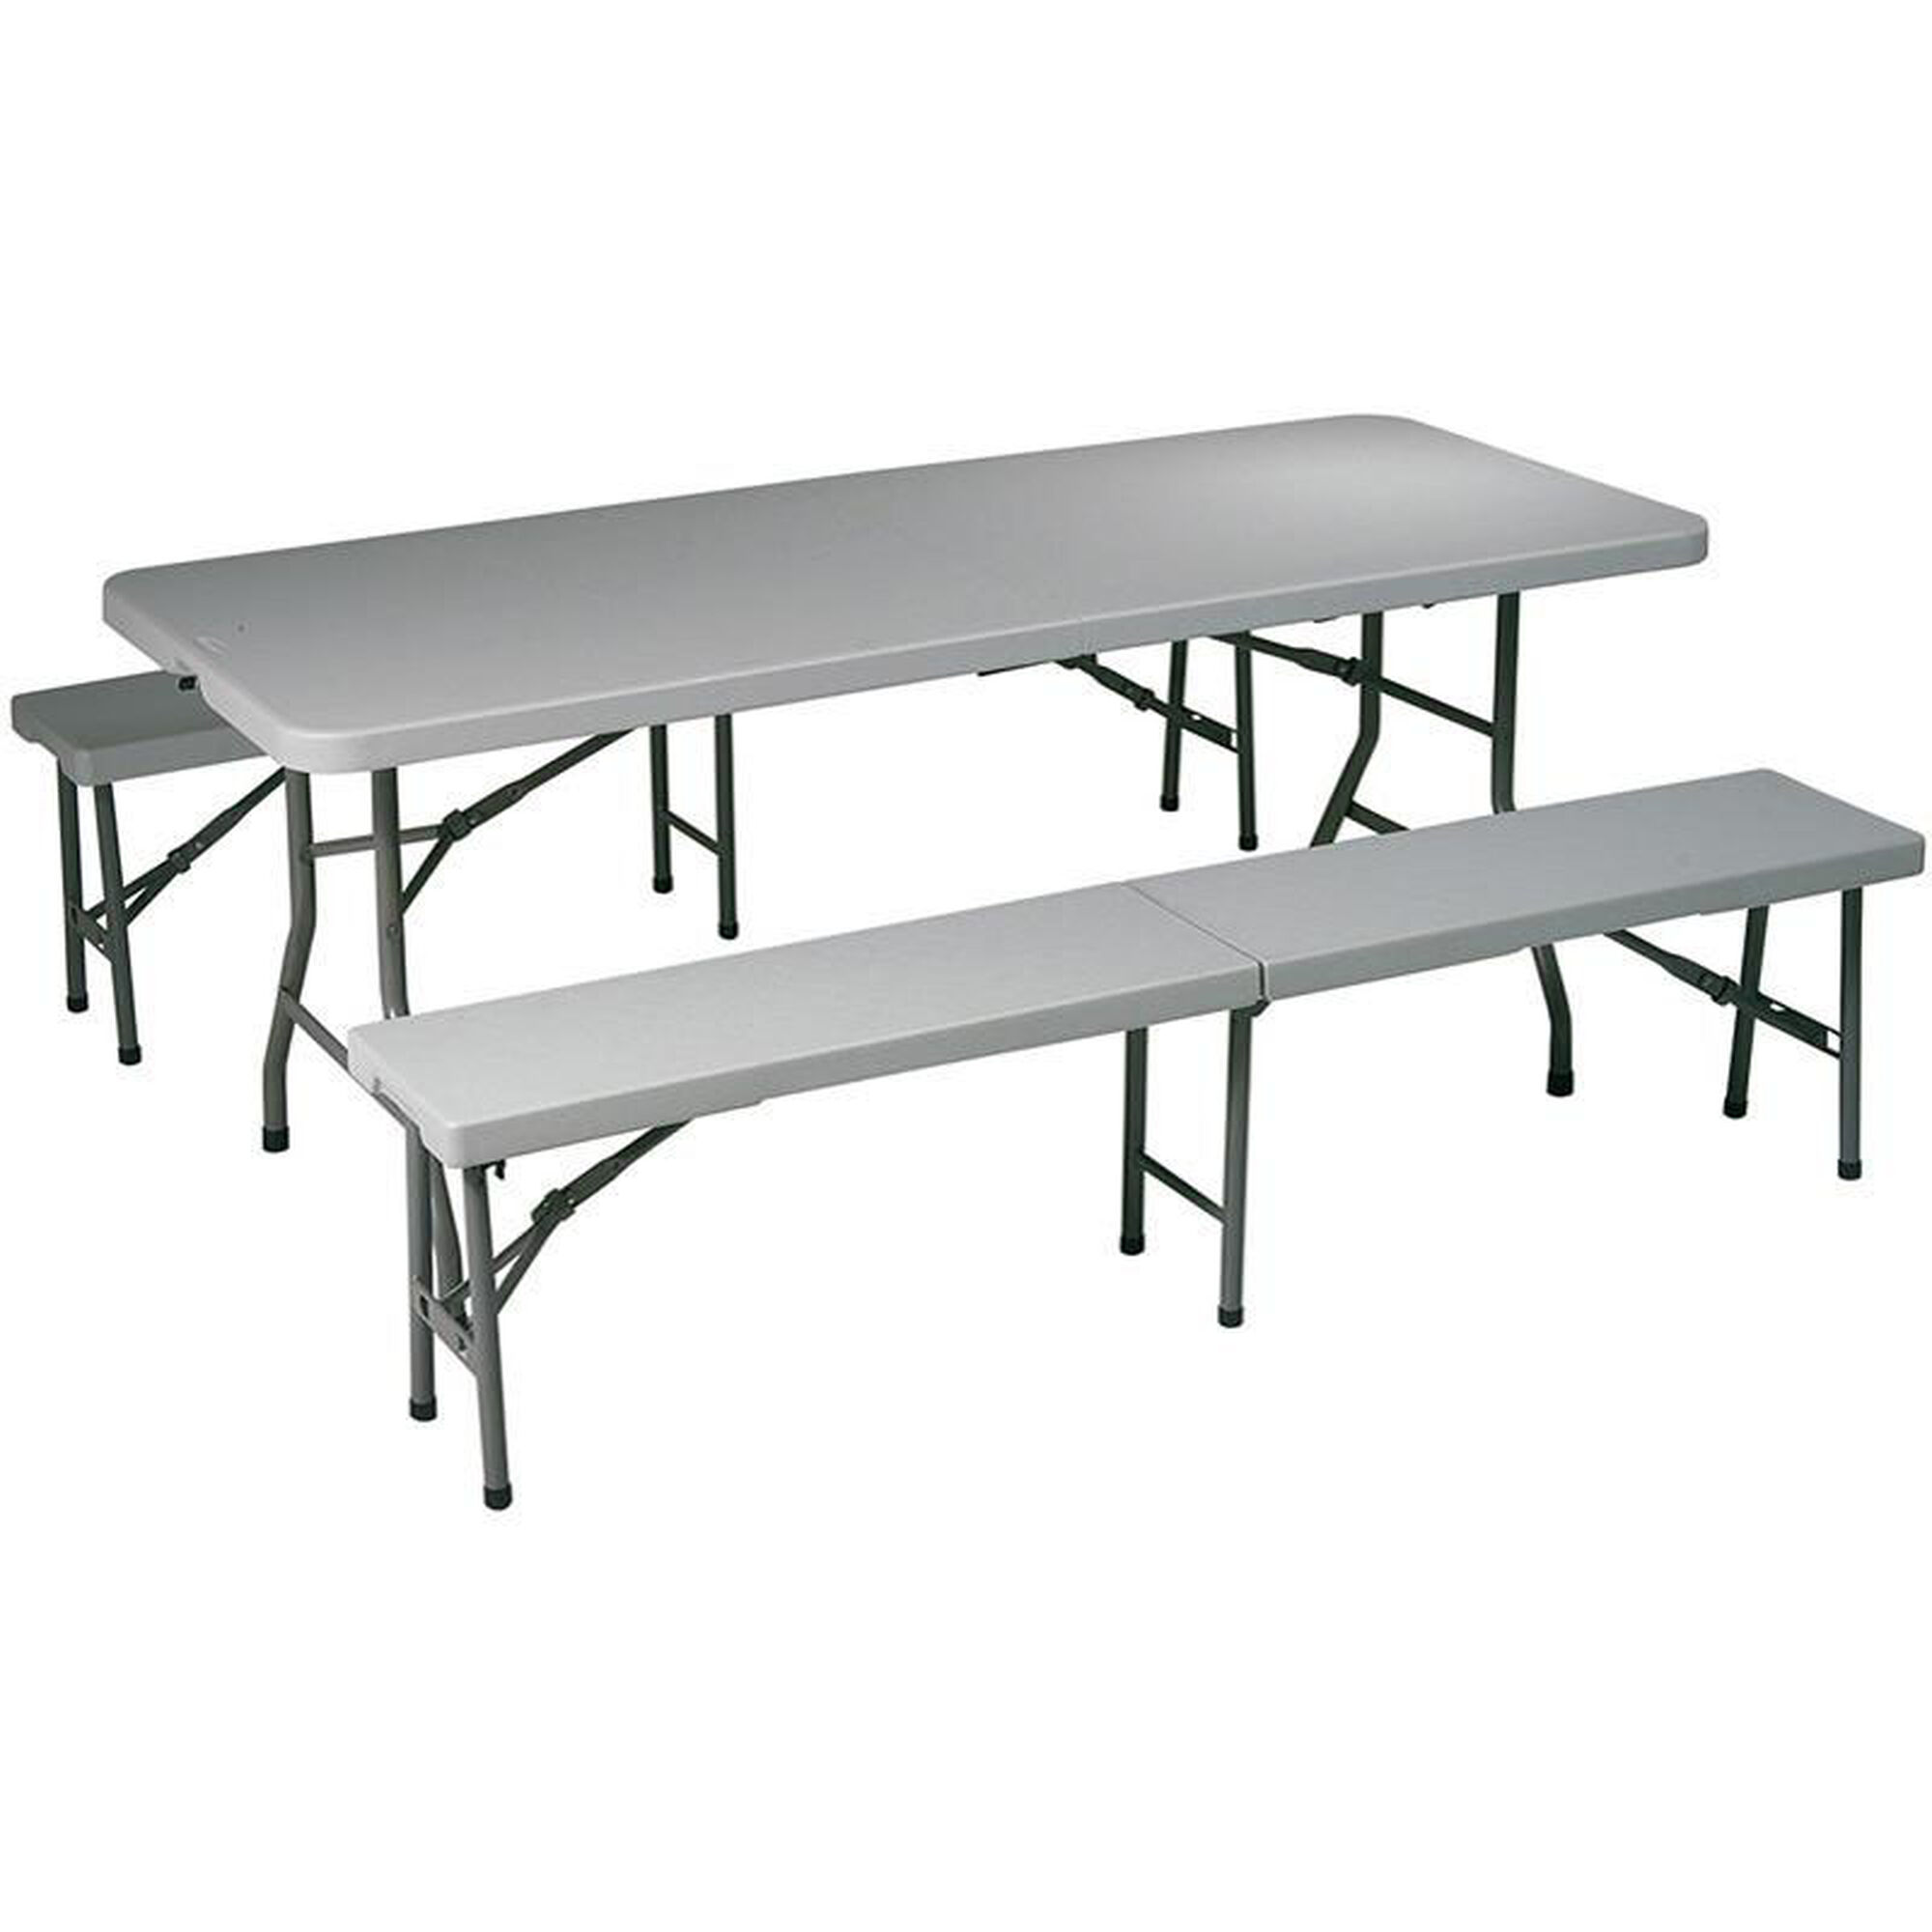 Our Work Smart Indoor Or Outdoor Use 3 Piece Folding Table